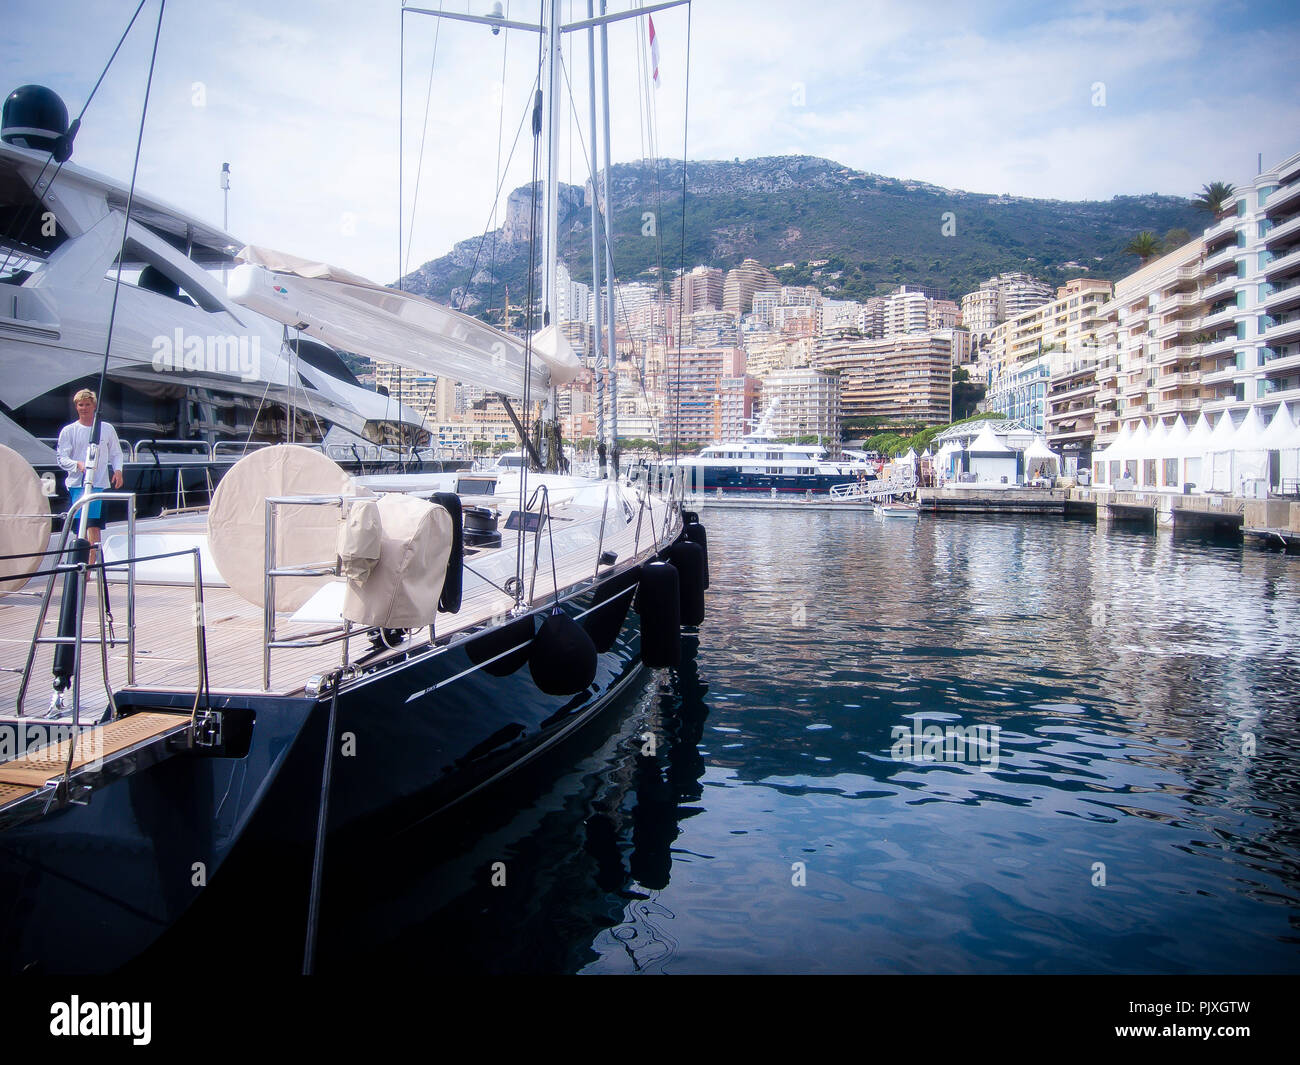 Yacht 'Crossbow' (32m) pictured in Port Hercules in the lead-up to the 26th Monaco Yacht Show with some 125 of the most desirable luxury Motor Yachts from around the world on display on September 24, 2016, in Monaco, Principality of Monaco. (Photo by Hugh Peterswald) - Stock Image